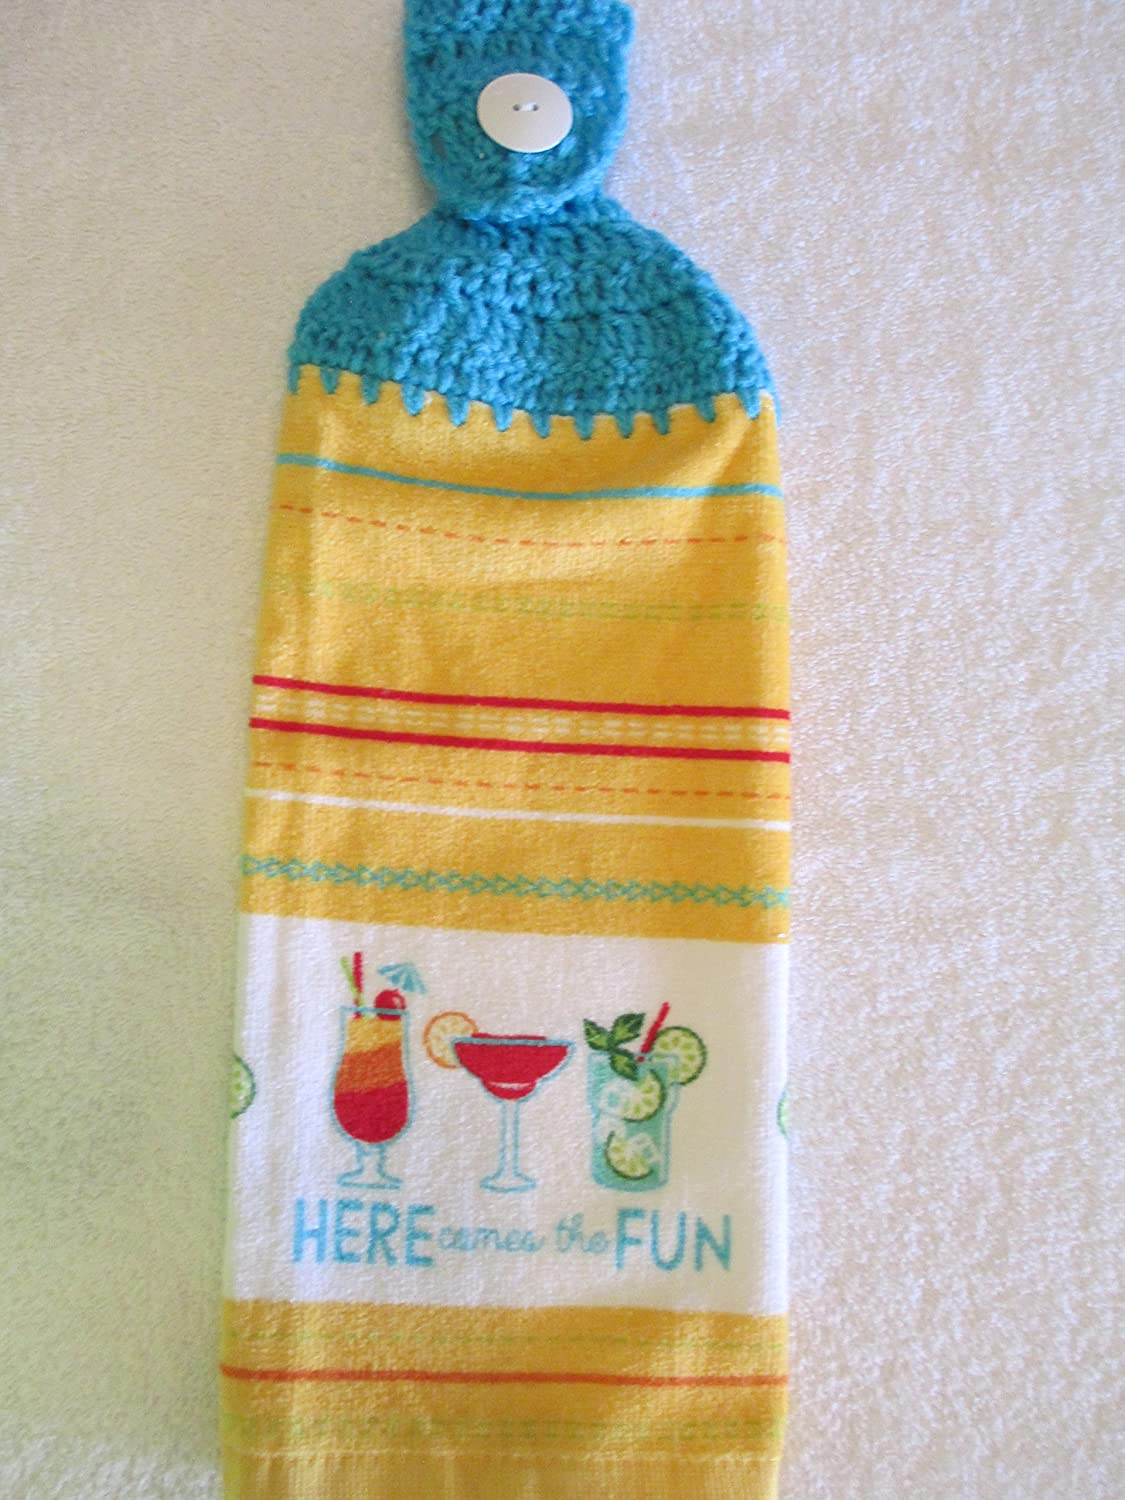 Crocheted Summer Here Comes the Fun Kitchen Towel with Turqua Yarn